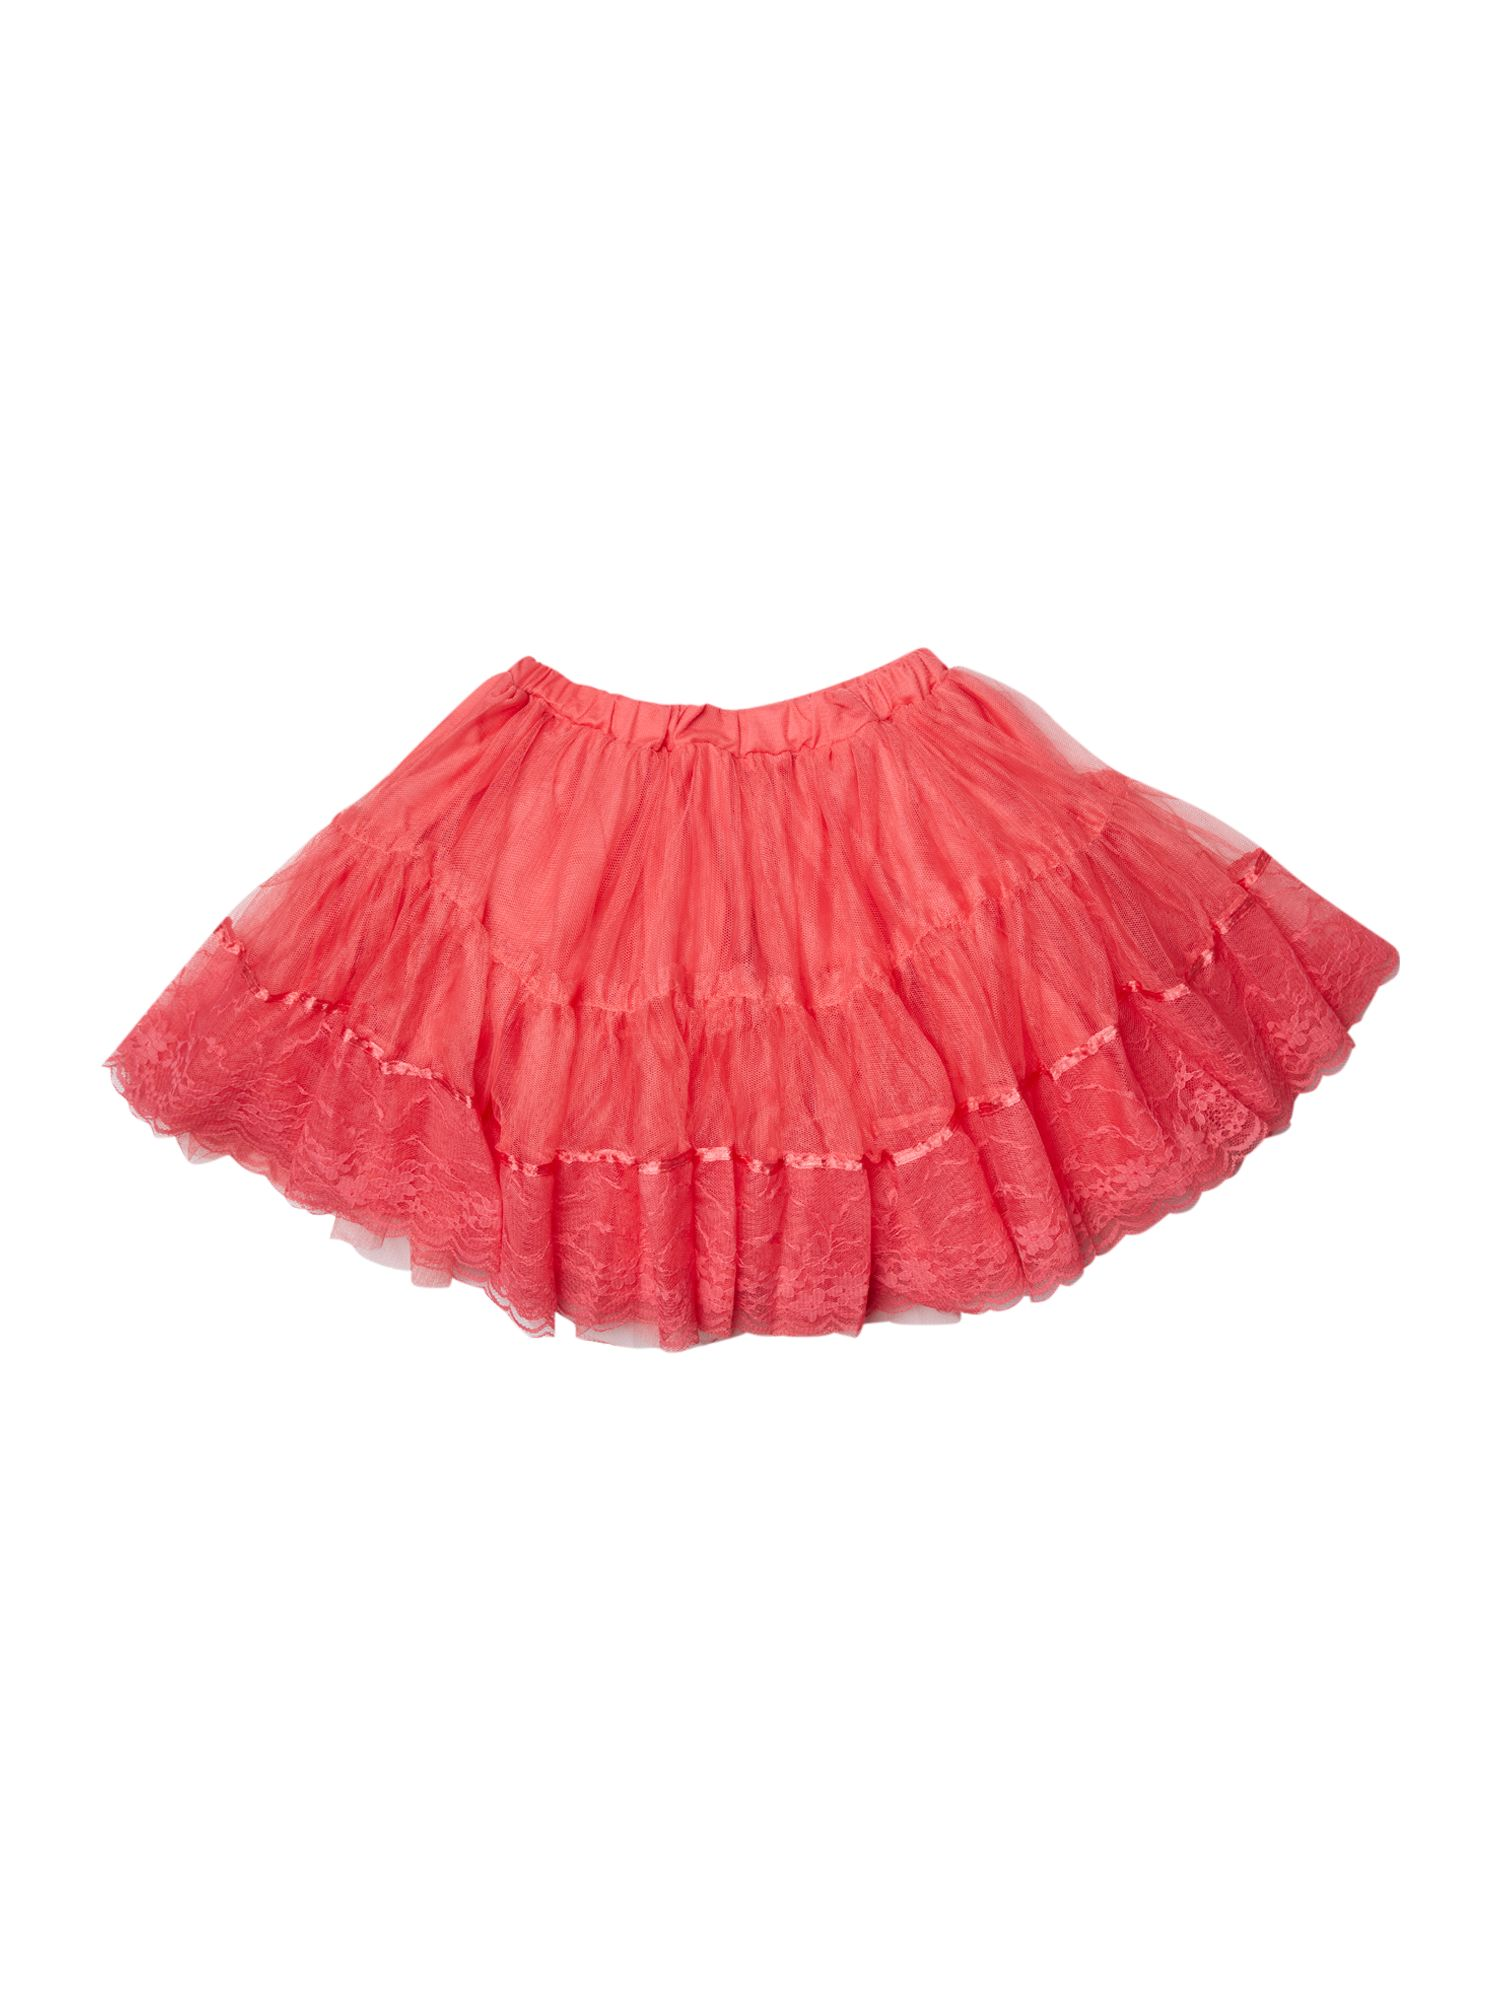 Girls layered tulle tutu skirt